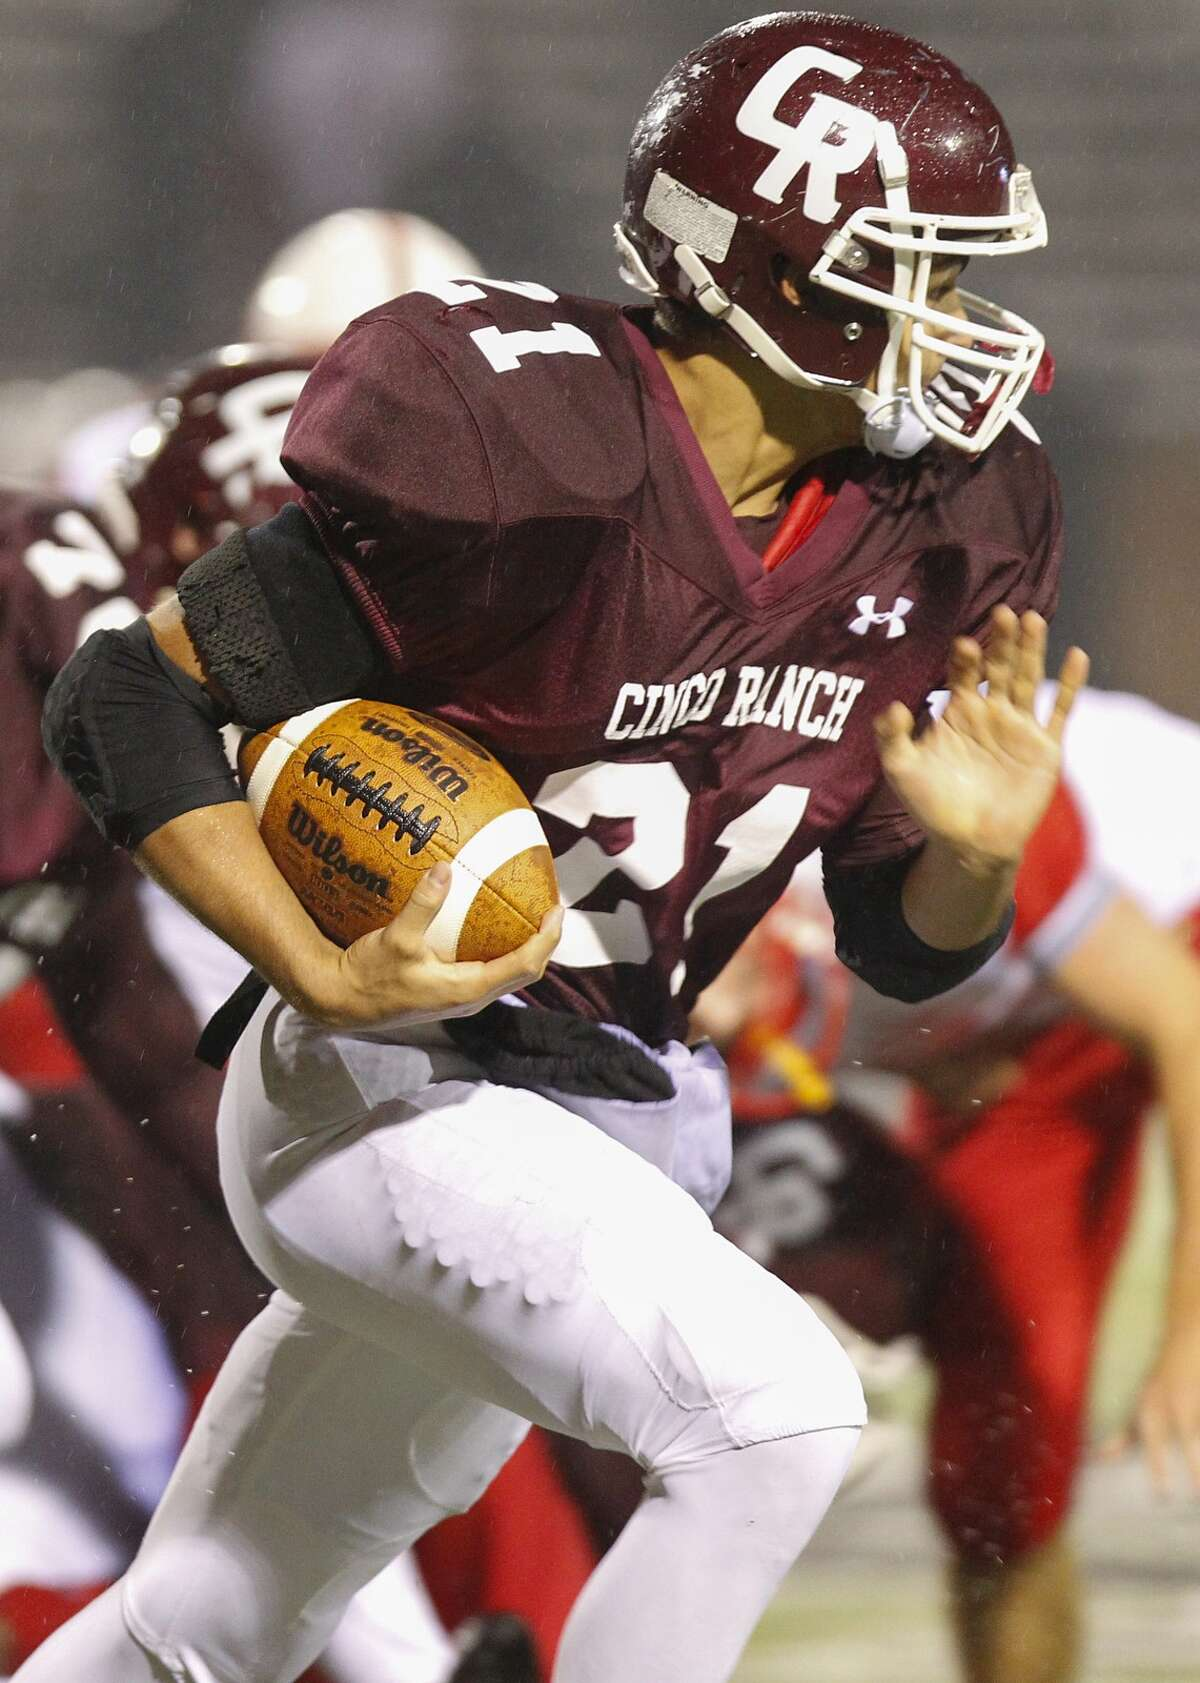 Cinco Ranch's Jonathan Lugo and the Cougars face Cy Ranch in the area round of the playoffs.